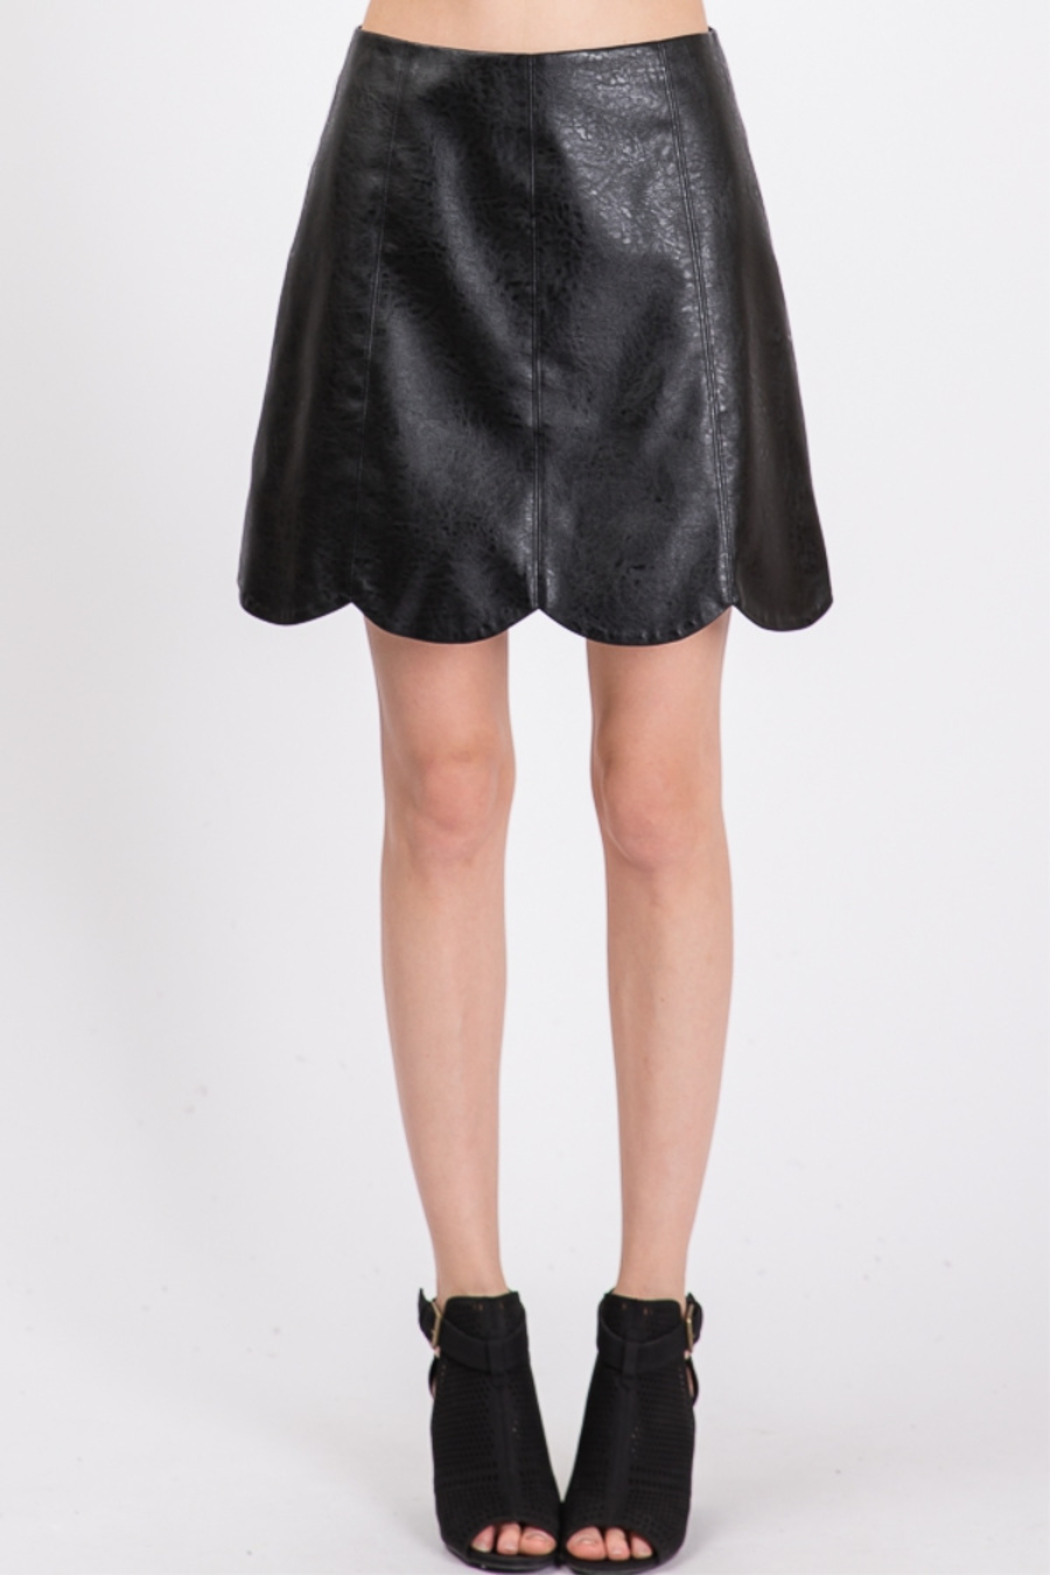 Lyn -Maree's Vegan Leather Scallop Skirt - Main Image